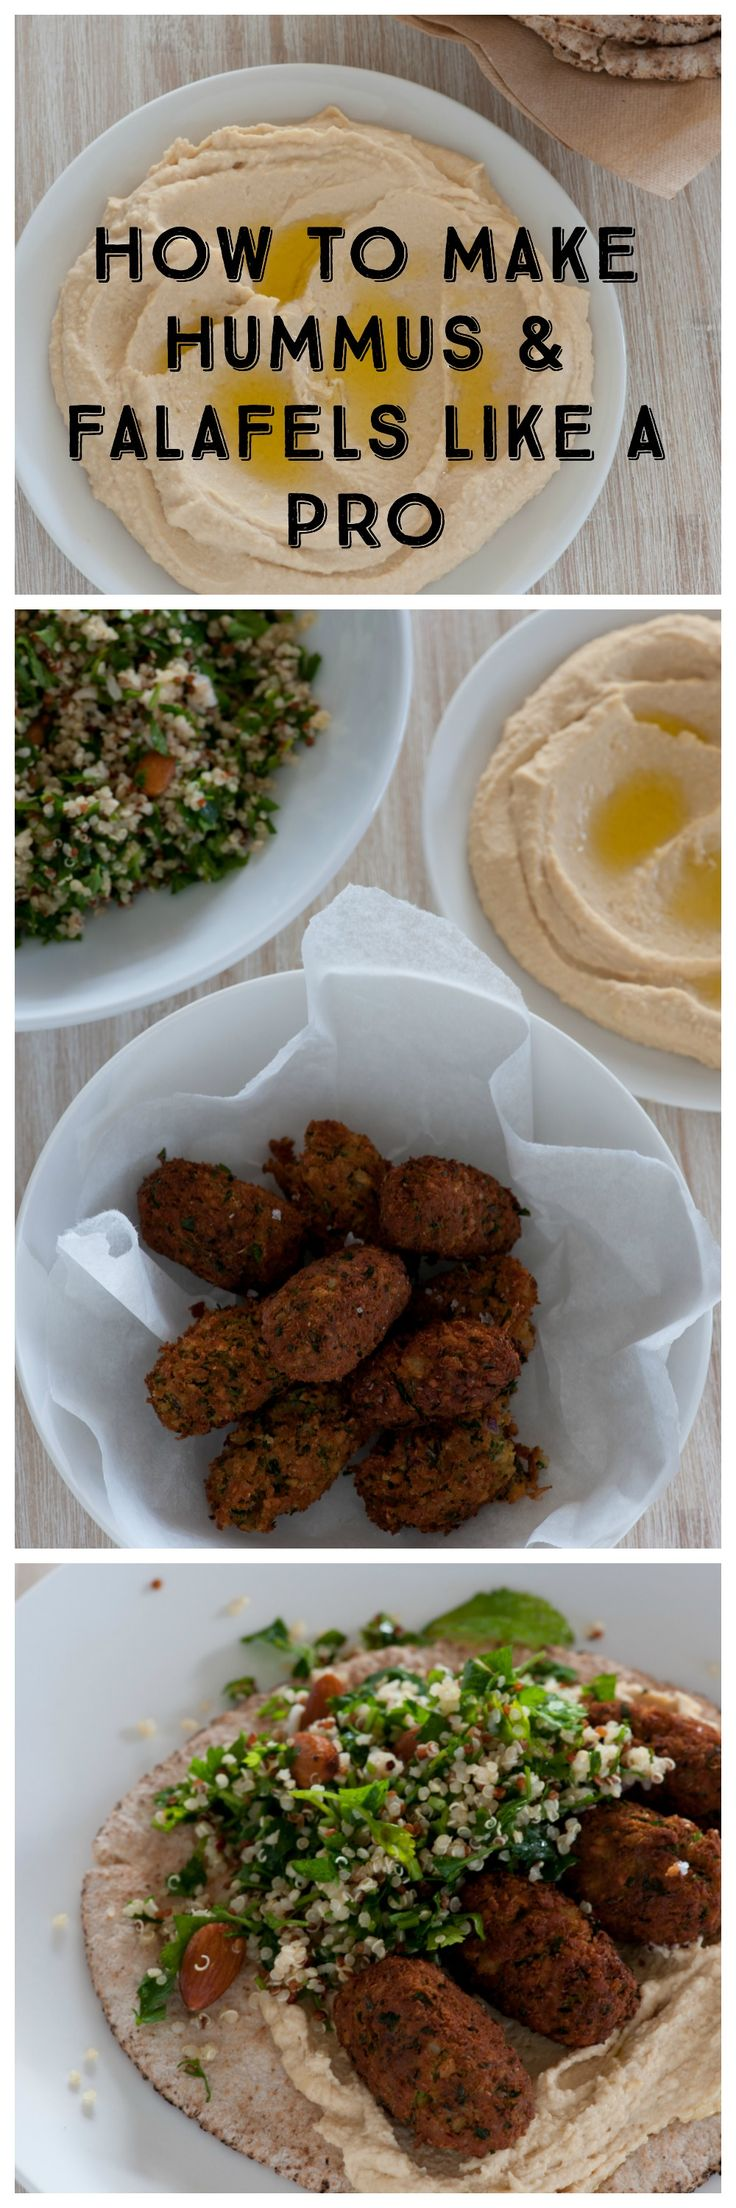 Hummus is such a wonderfully versatile condiment. I could happily eat it for every meal. It's lovely on it's own with some flat bread. It's also wonderful as a sauce or a sandwich spread. It's pairs wonderfully with lamb but it's soul mate is well and truly fresh falafels, hot from the pan.